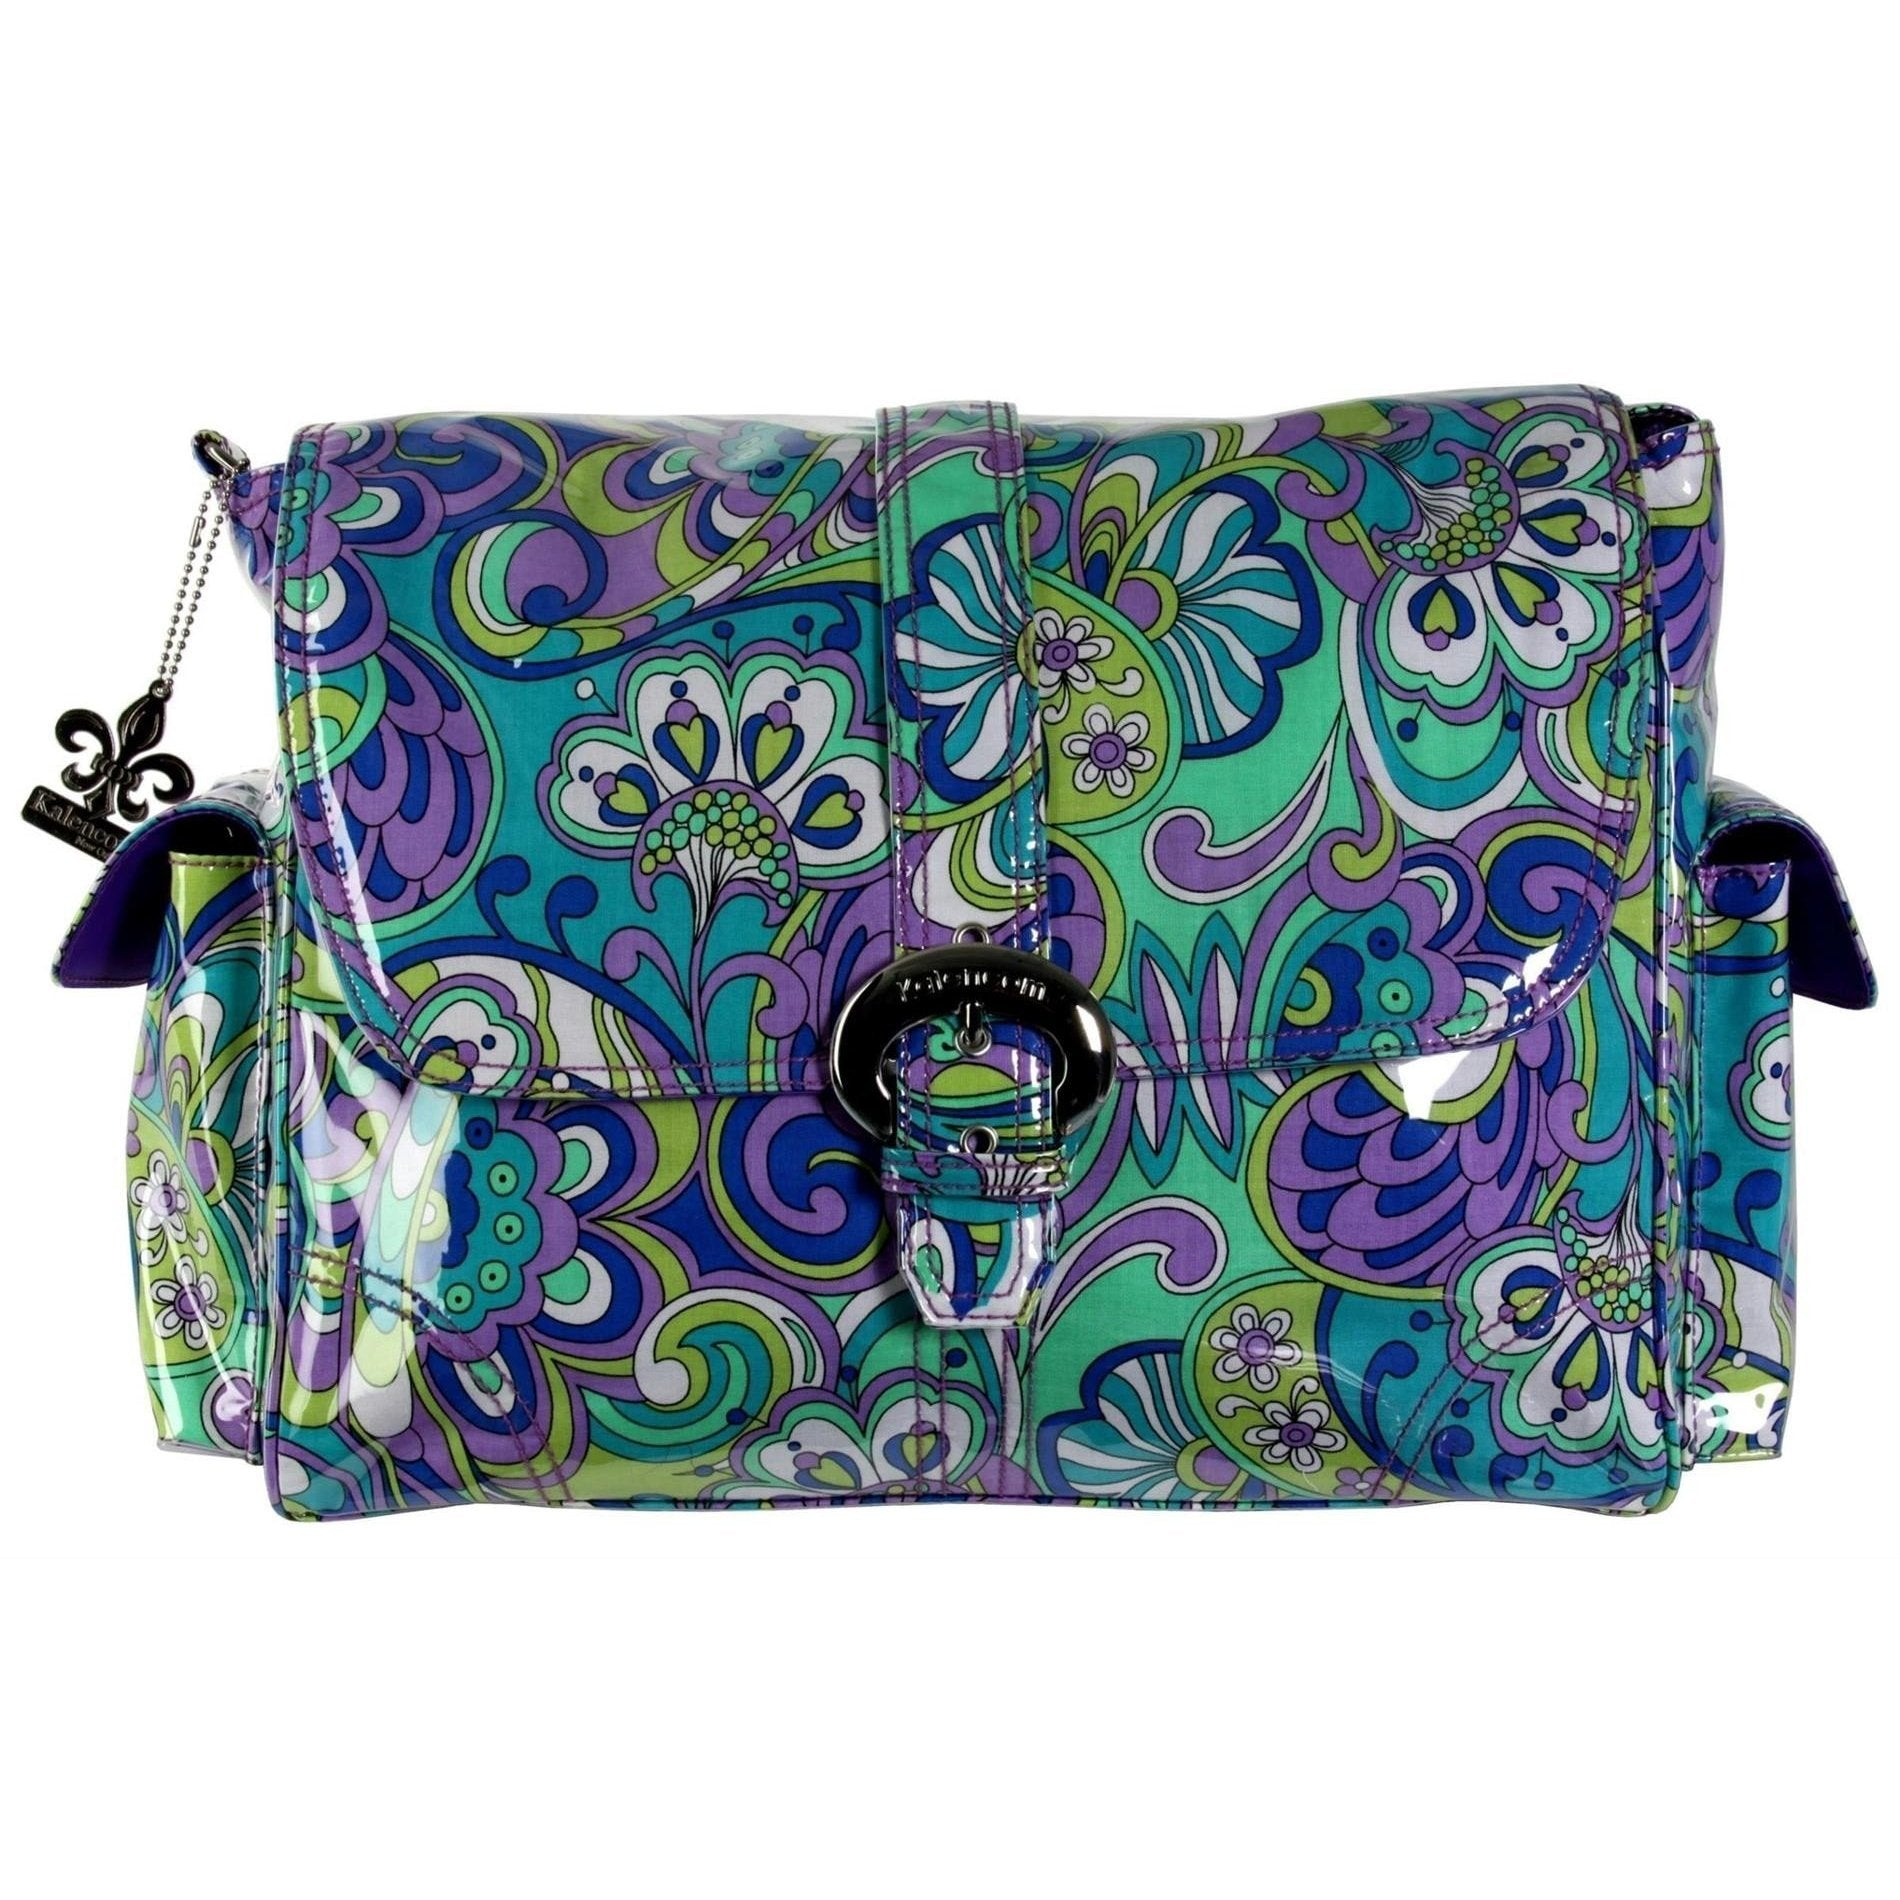 Russian Floral Blue Laminated Buckle Diaper Bag | Style 2960 - Kalencom-Diaper Bags-Jack and Jill Boutique